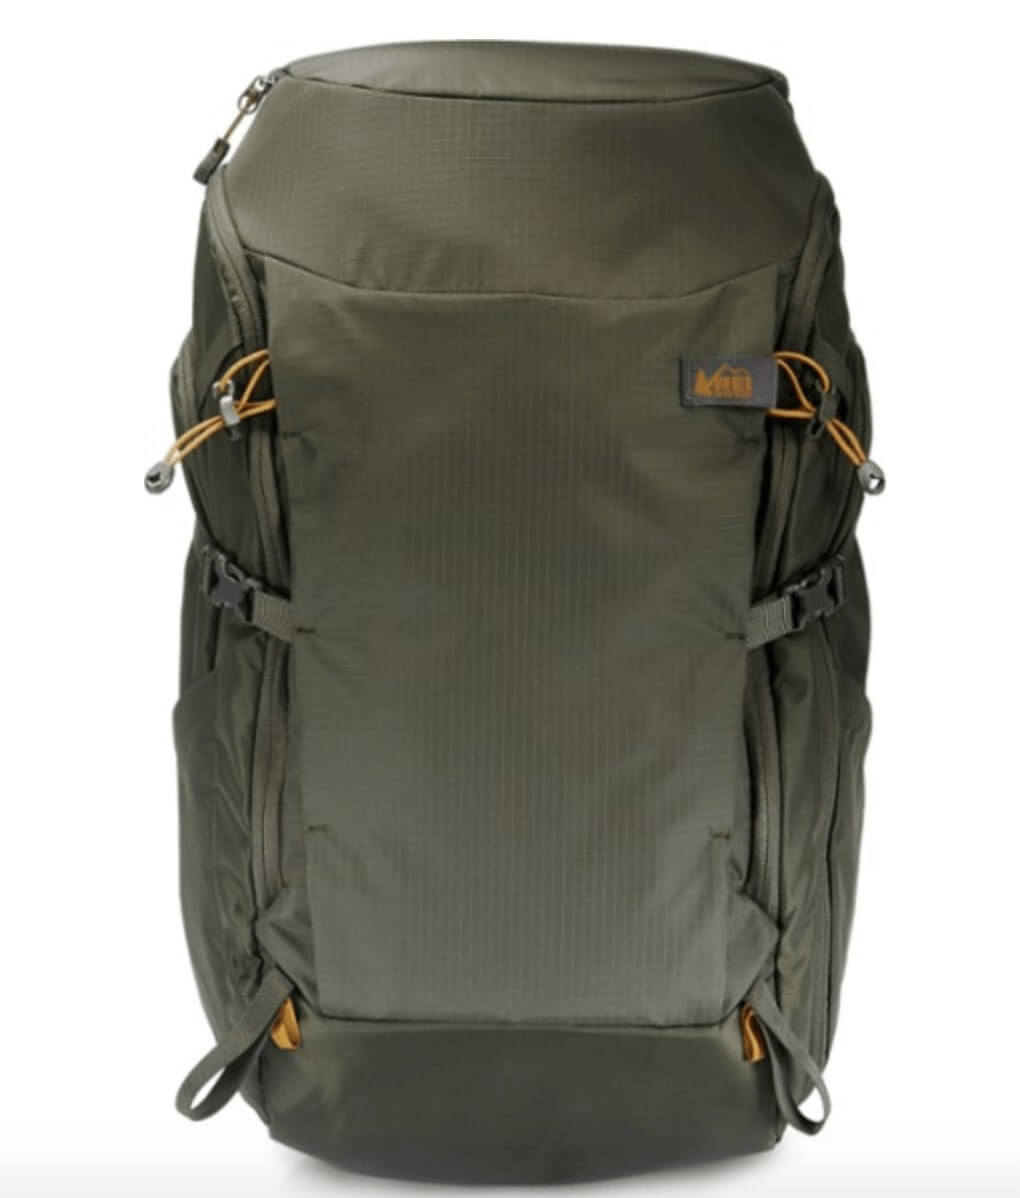 rei carry on backpack